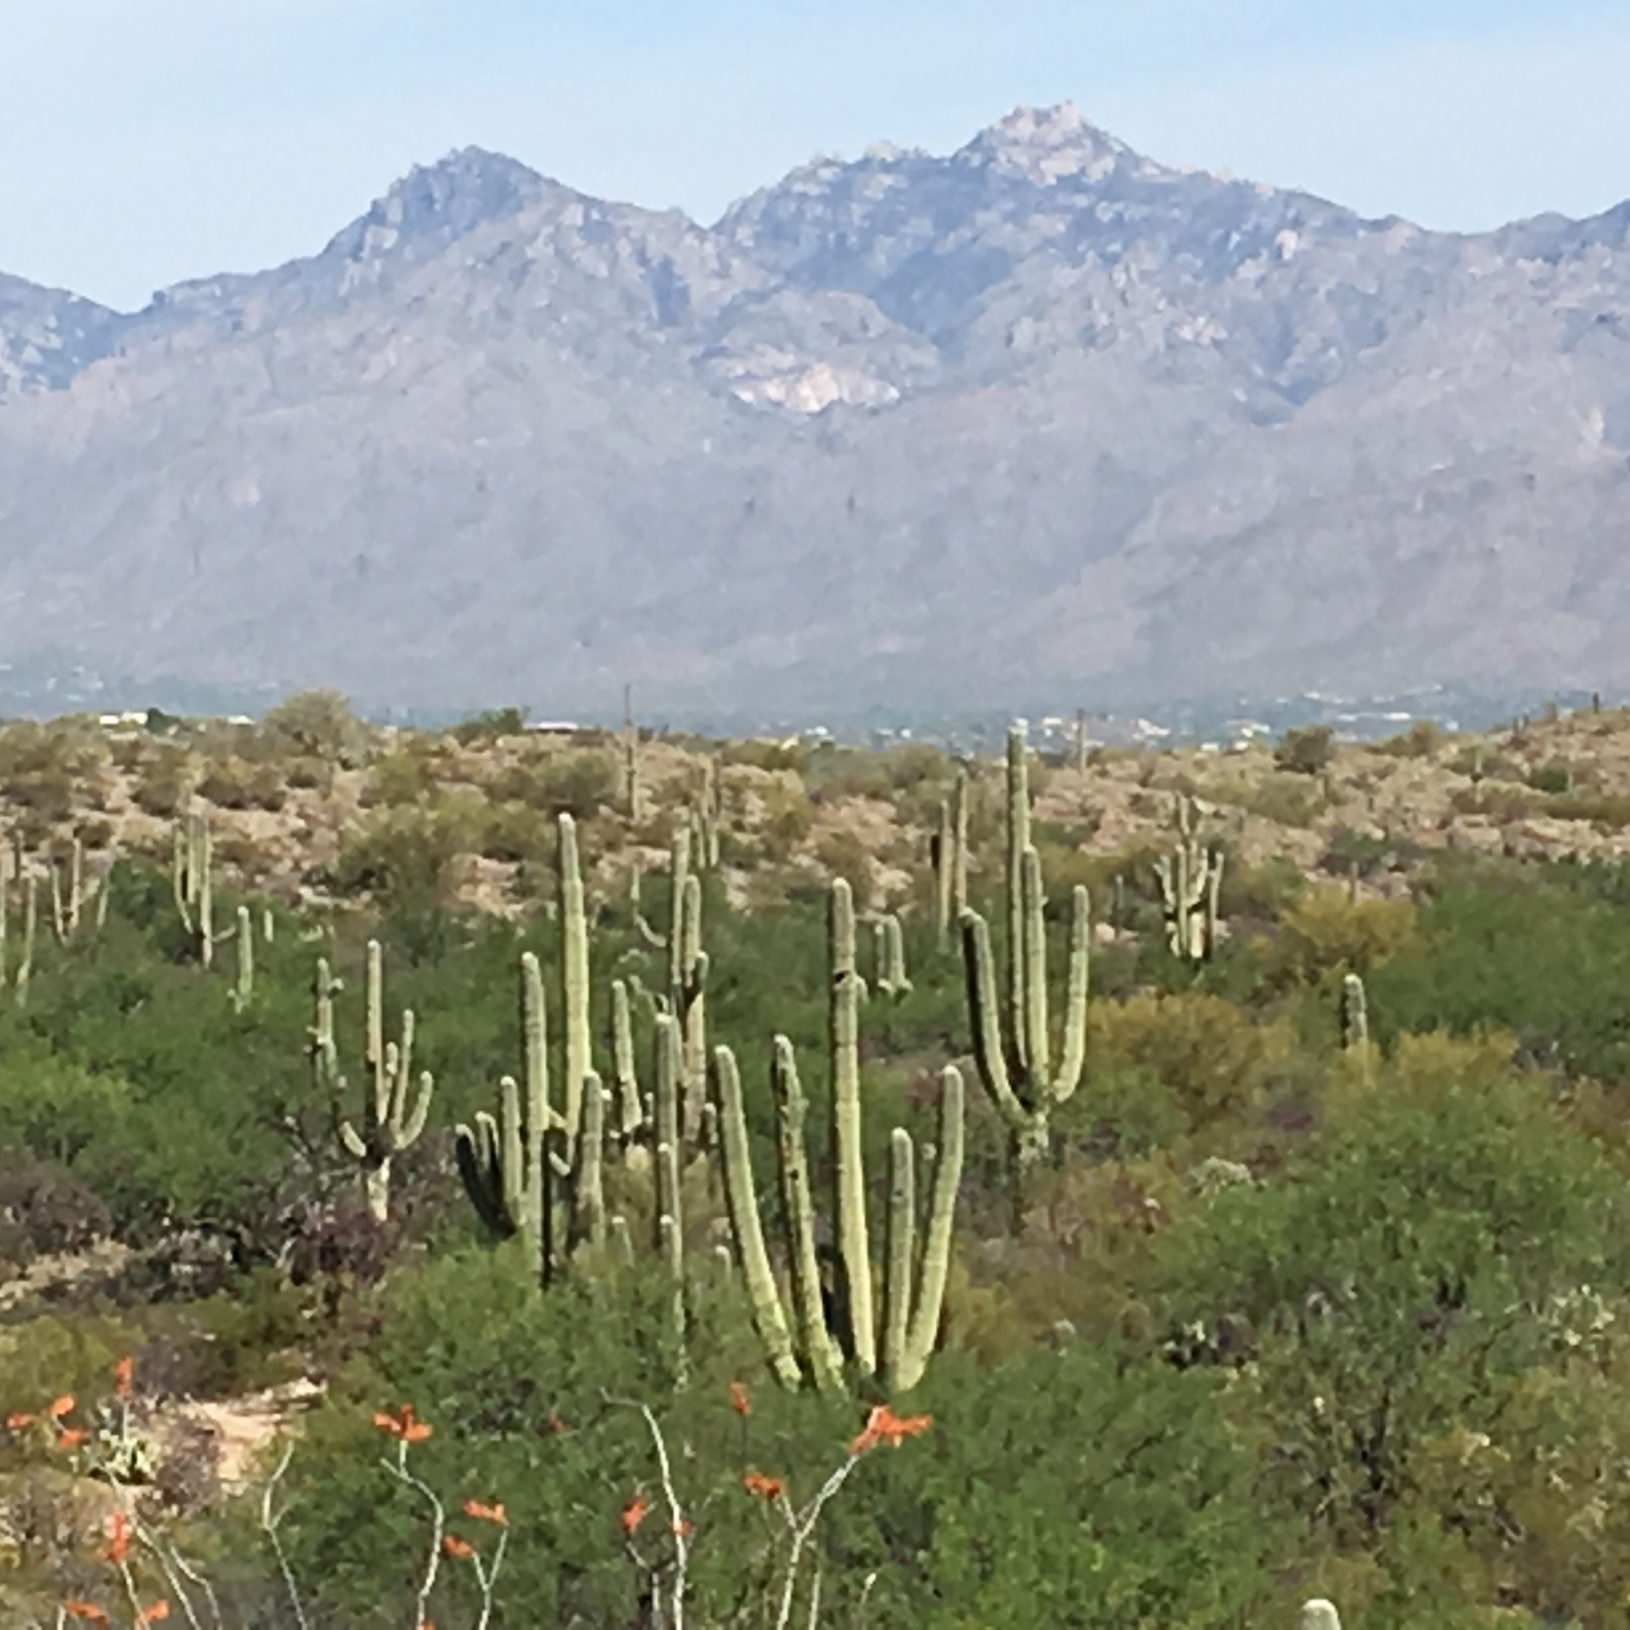 Image of Saguaros near Tucson